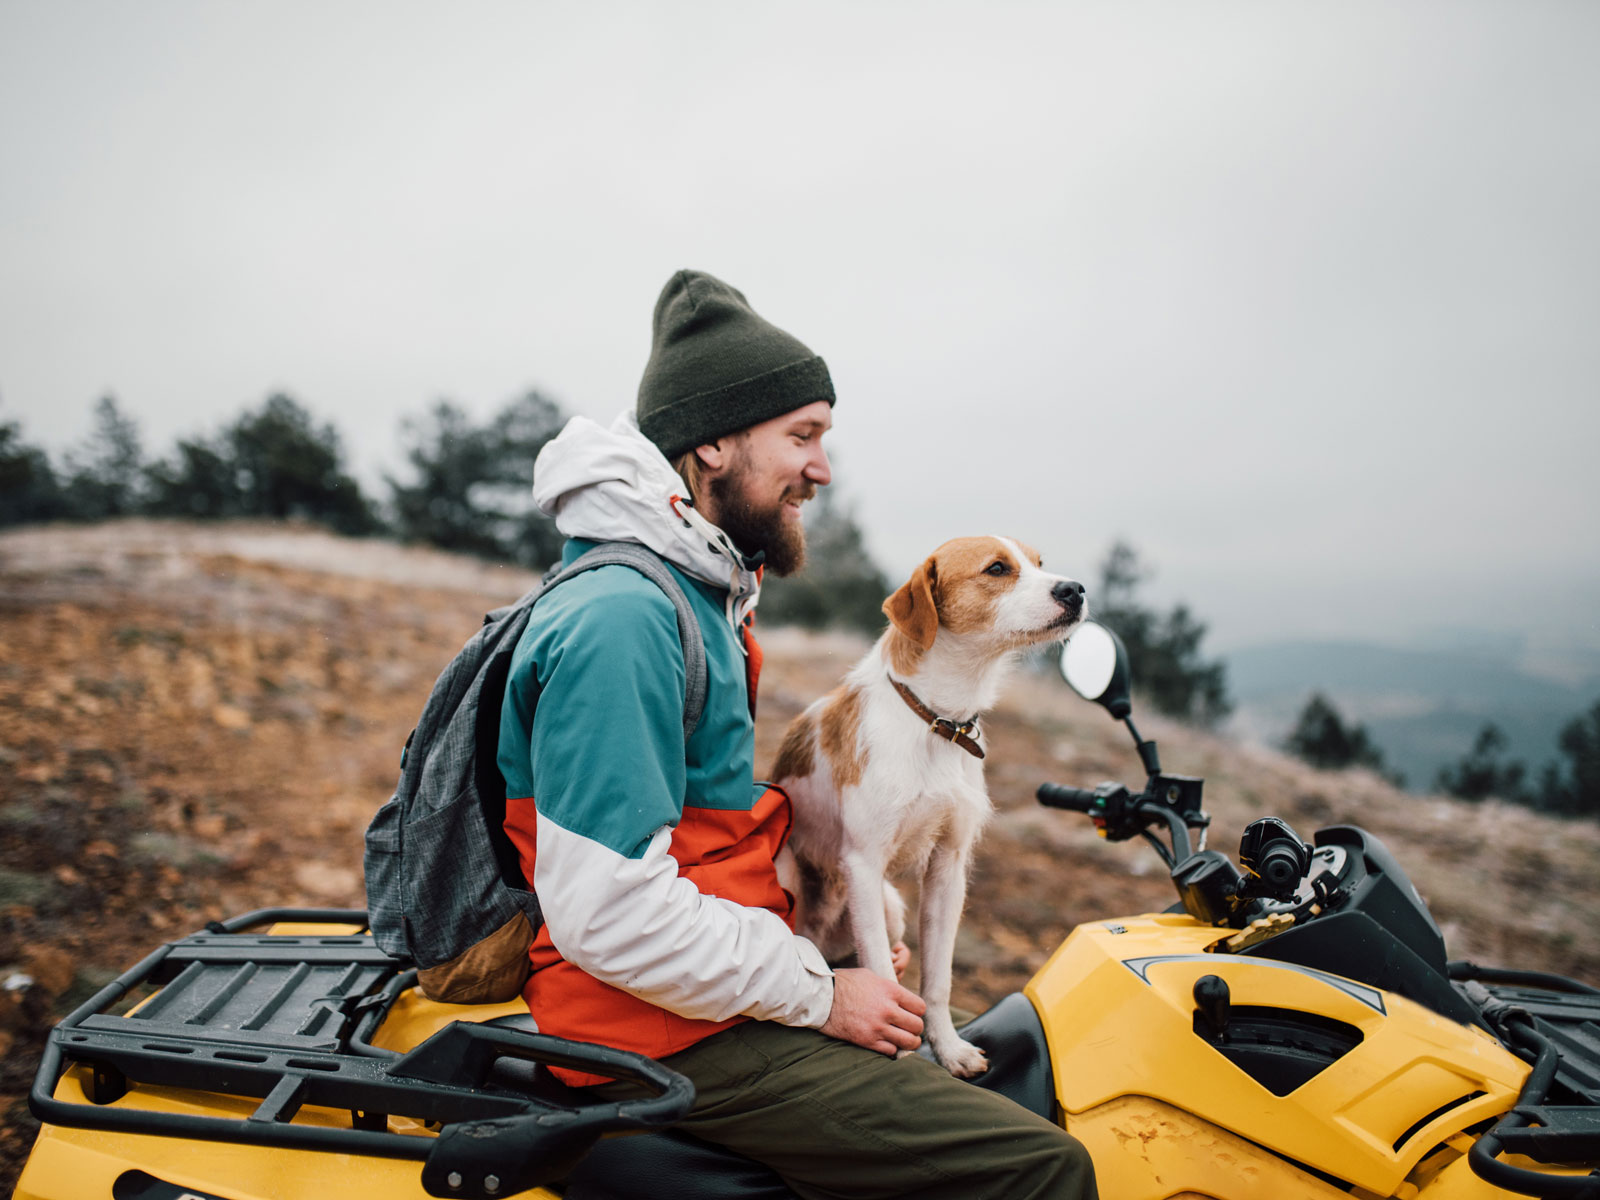 Man on an ATV with a dog sitting on his lap